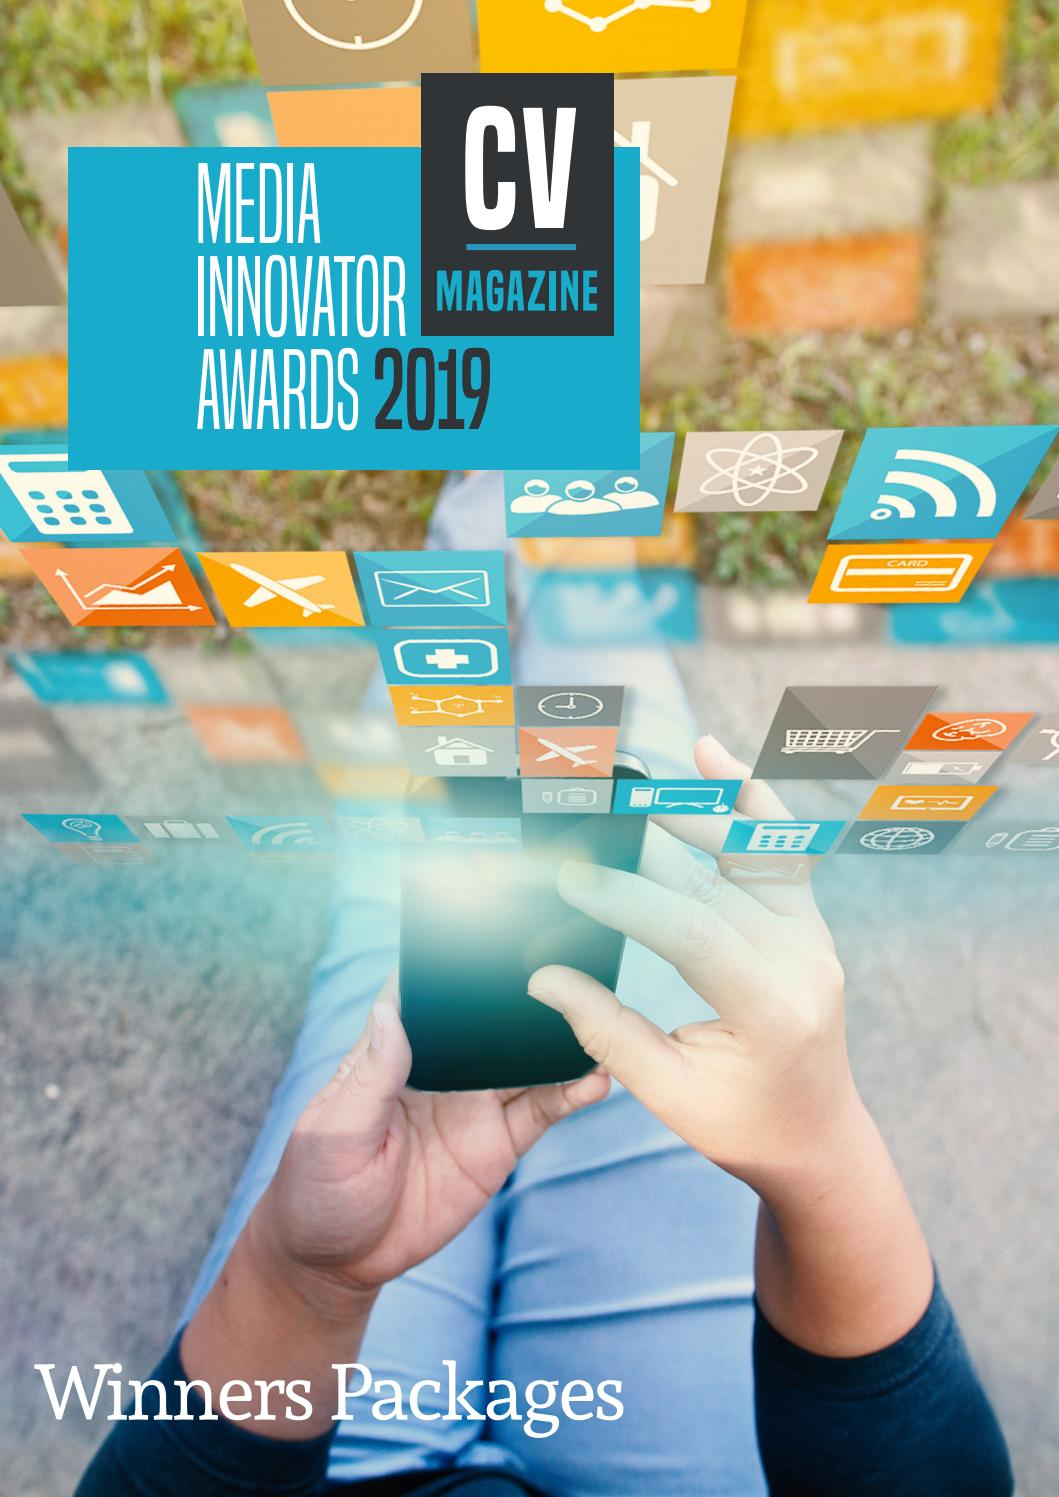 2019 Media Innovator Awards Packages by AI Global Media - issuu